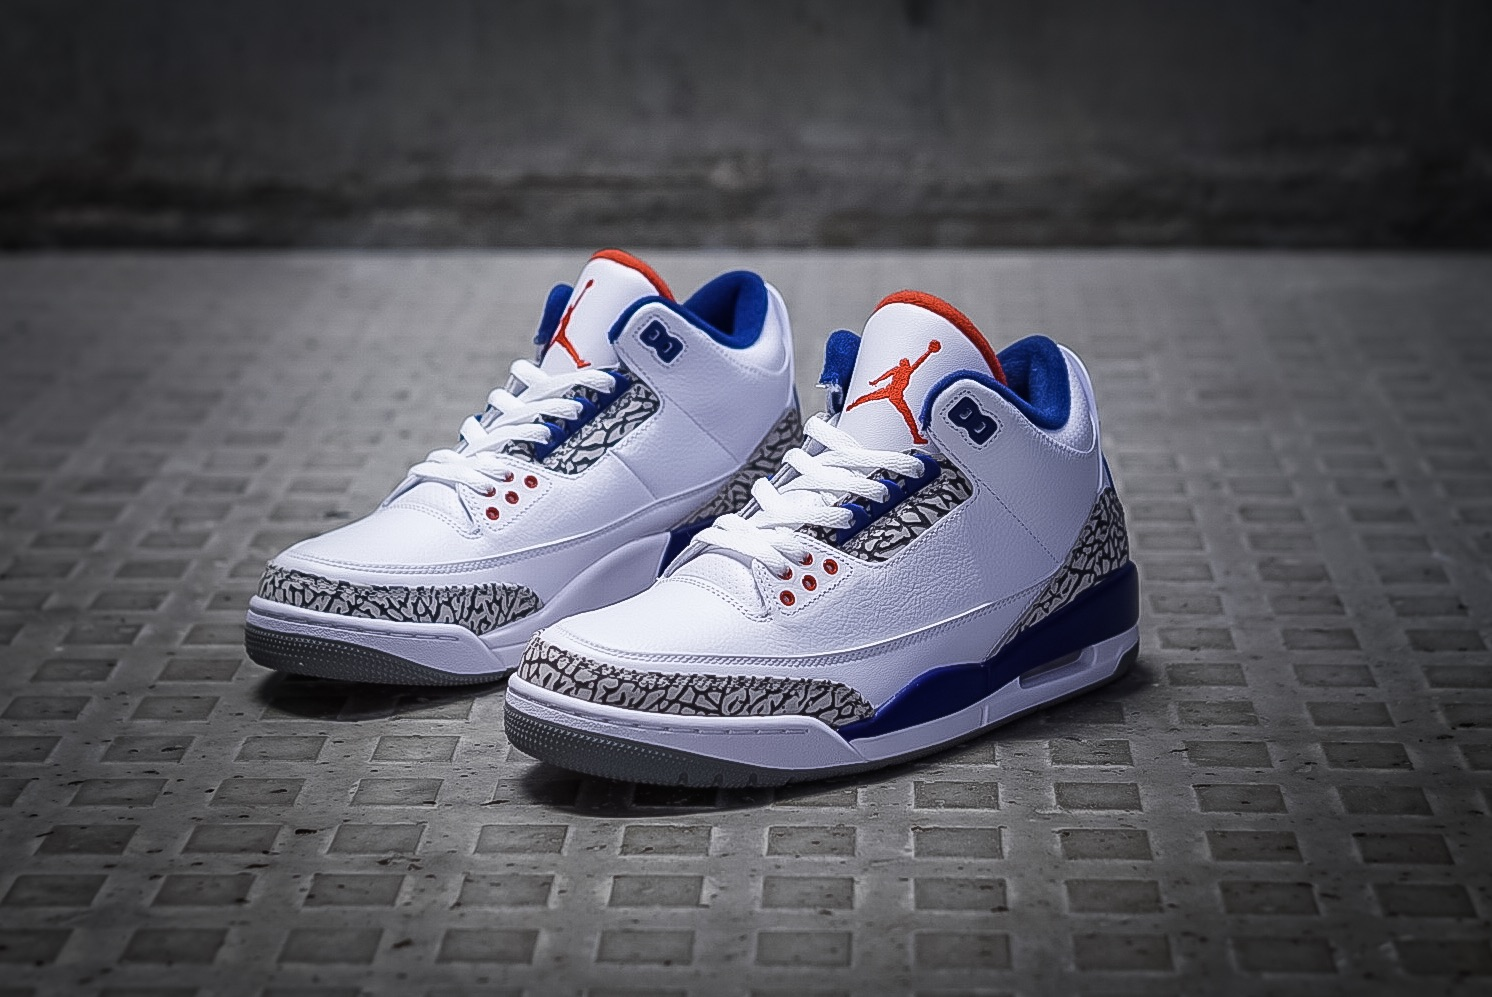 78f9588f5365 true blue Archives - Air 23 - Air Jordan Release Dates